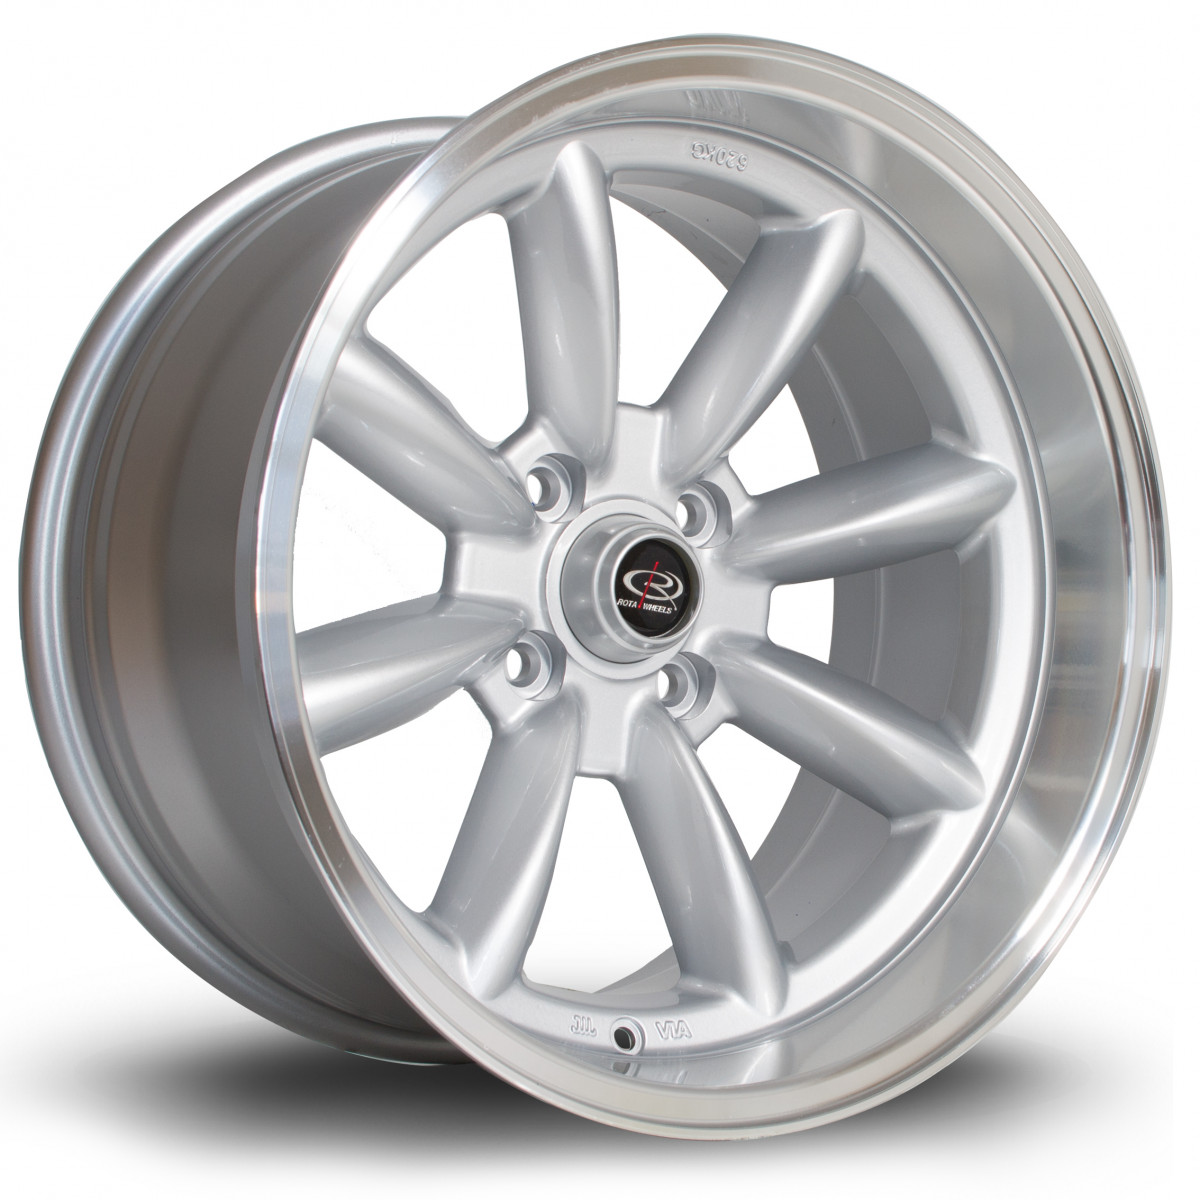 RBX 17x9 4x114 ET-13 Silver with Polished Lip